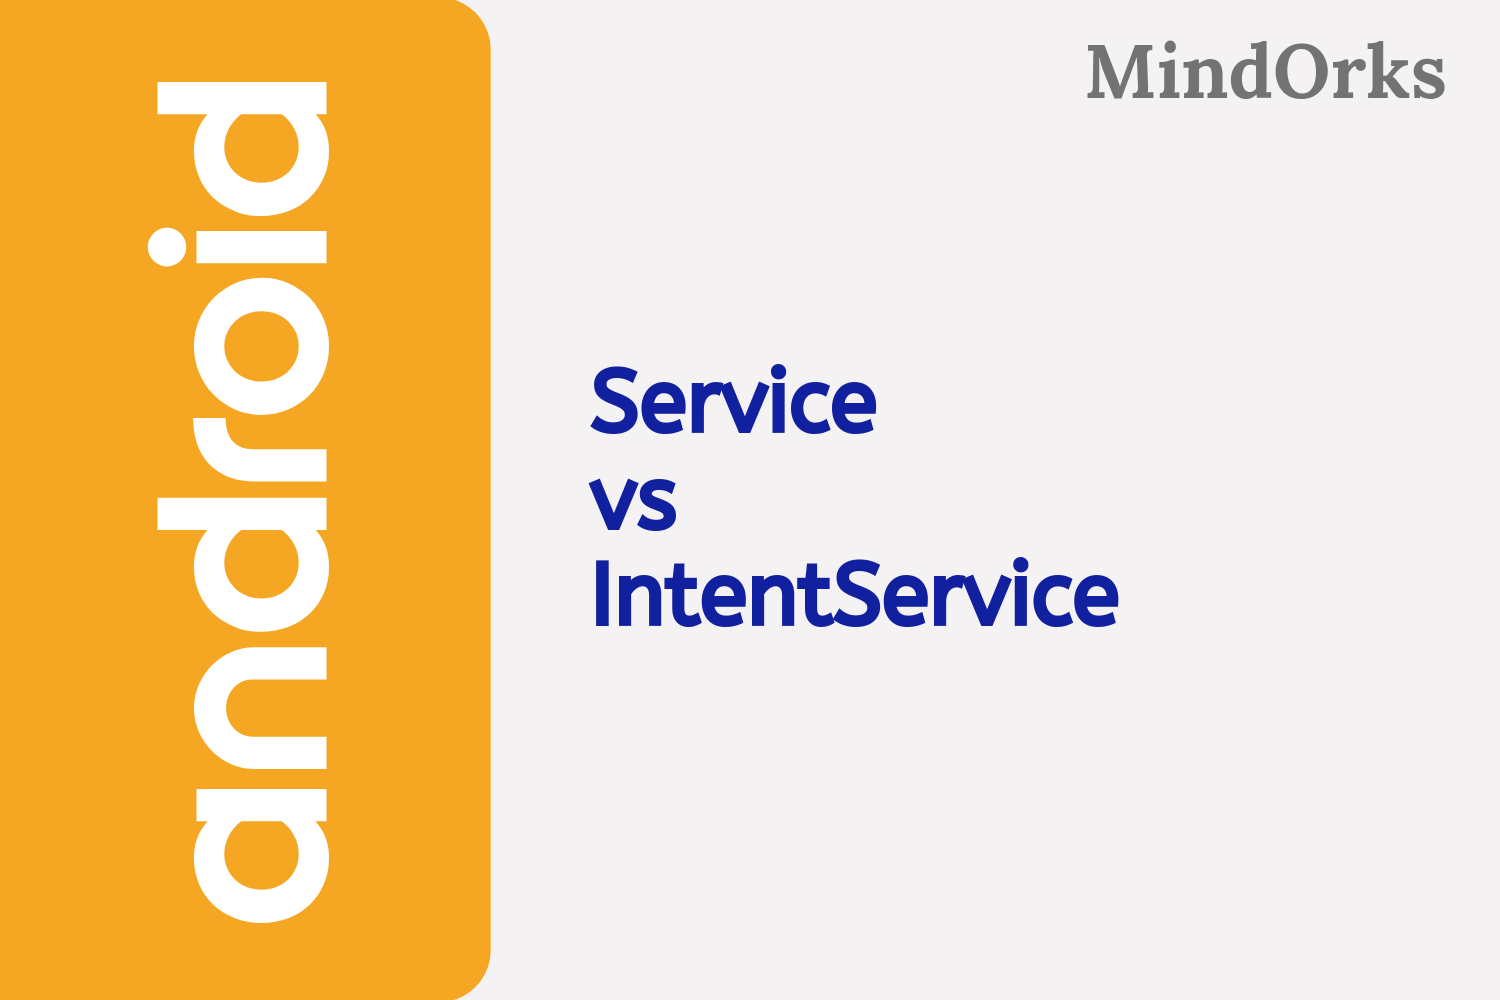 Service vs IntentService in Android